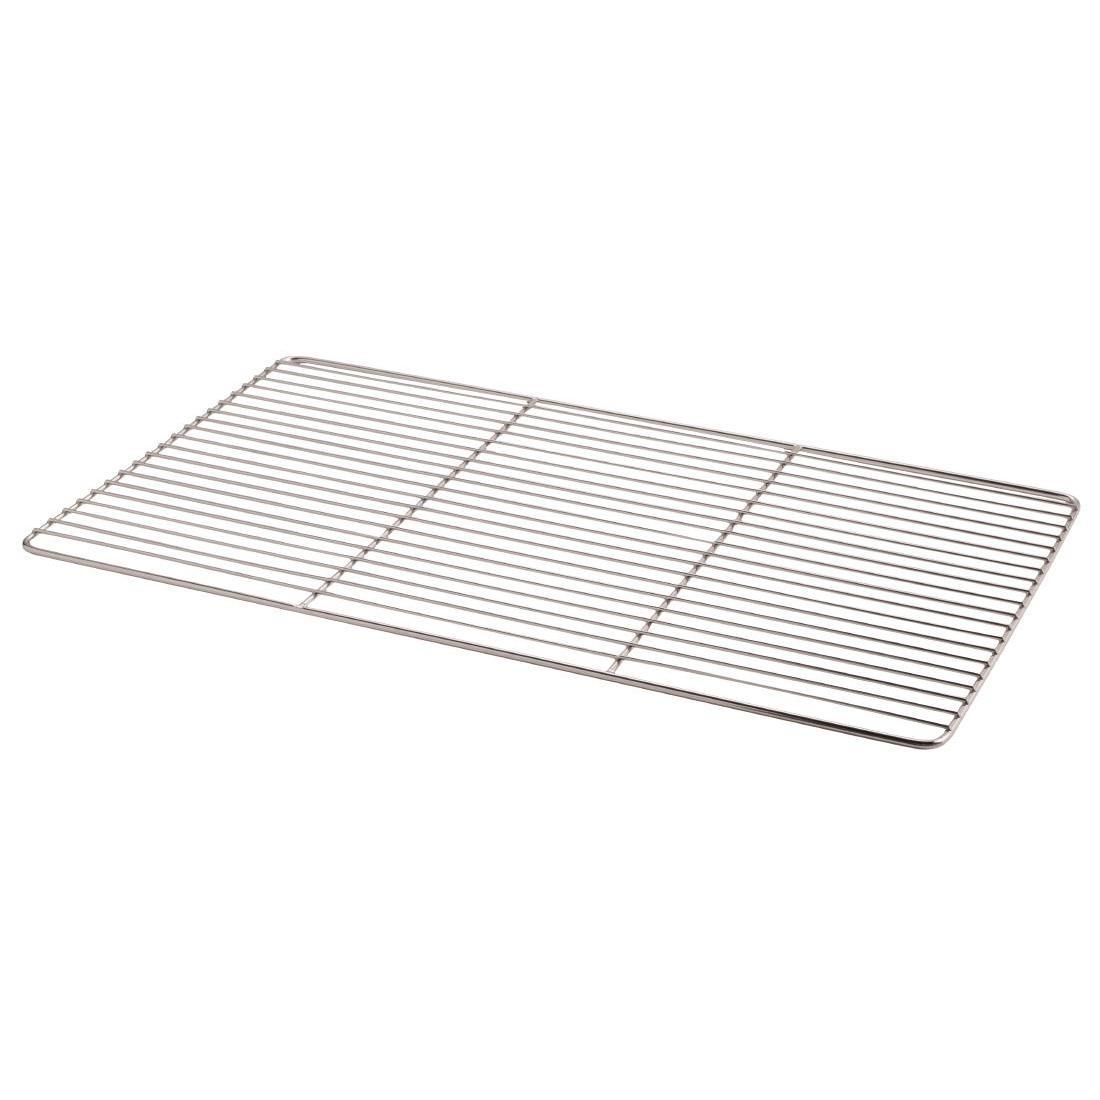 Vogue Cooling Rack 600 x 400mm - M930